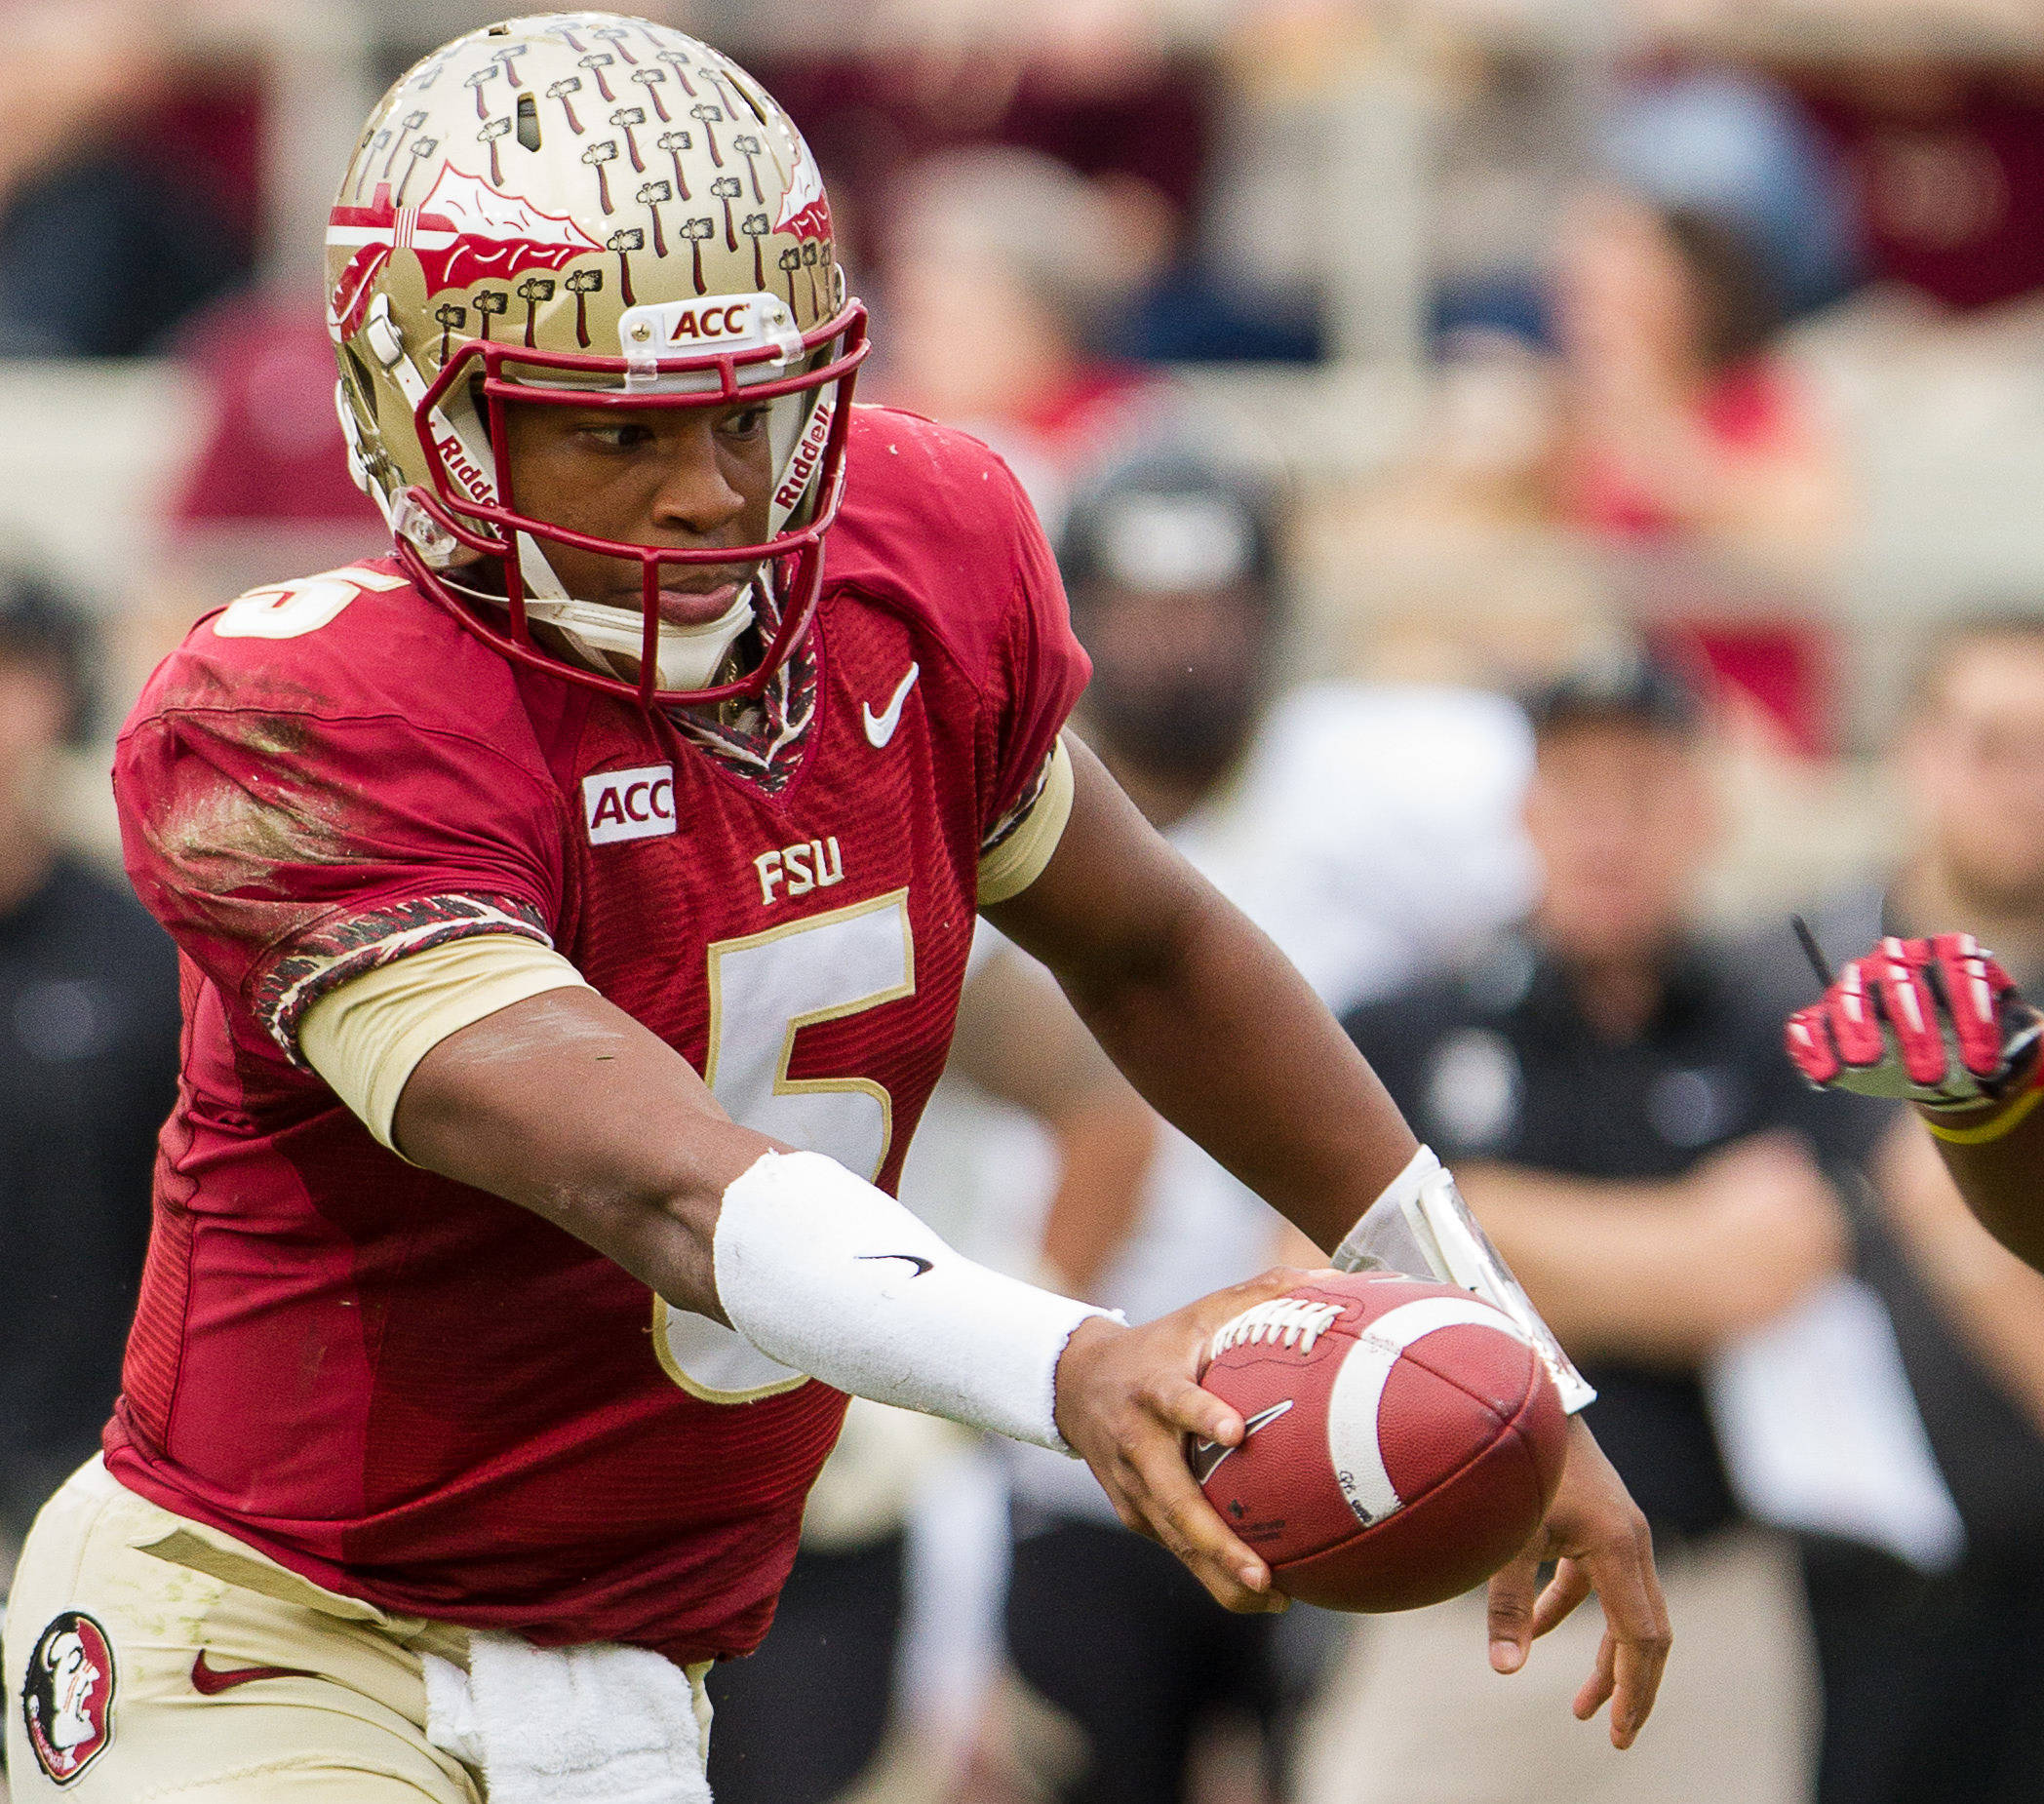 Jameis Winston (5) makes a handoff during FSU Football's 80-14 victory over Idaho in Tallahassee, Fla on Saturday, November 23, 2013. Photos by Mike Schwarz.